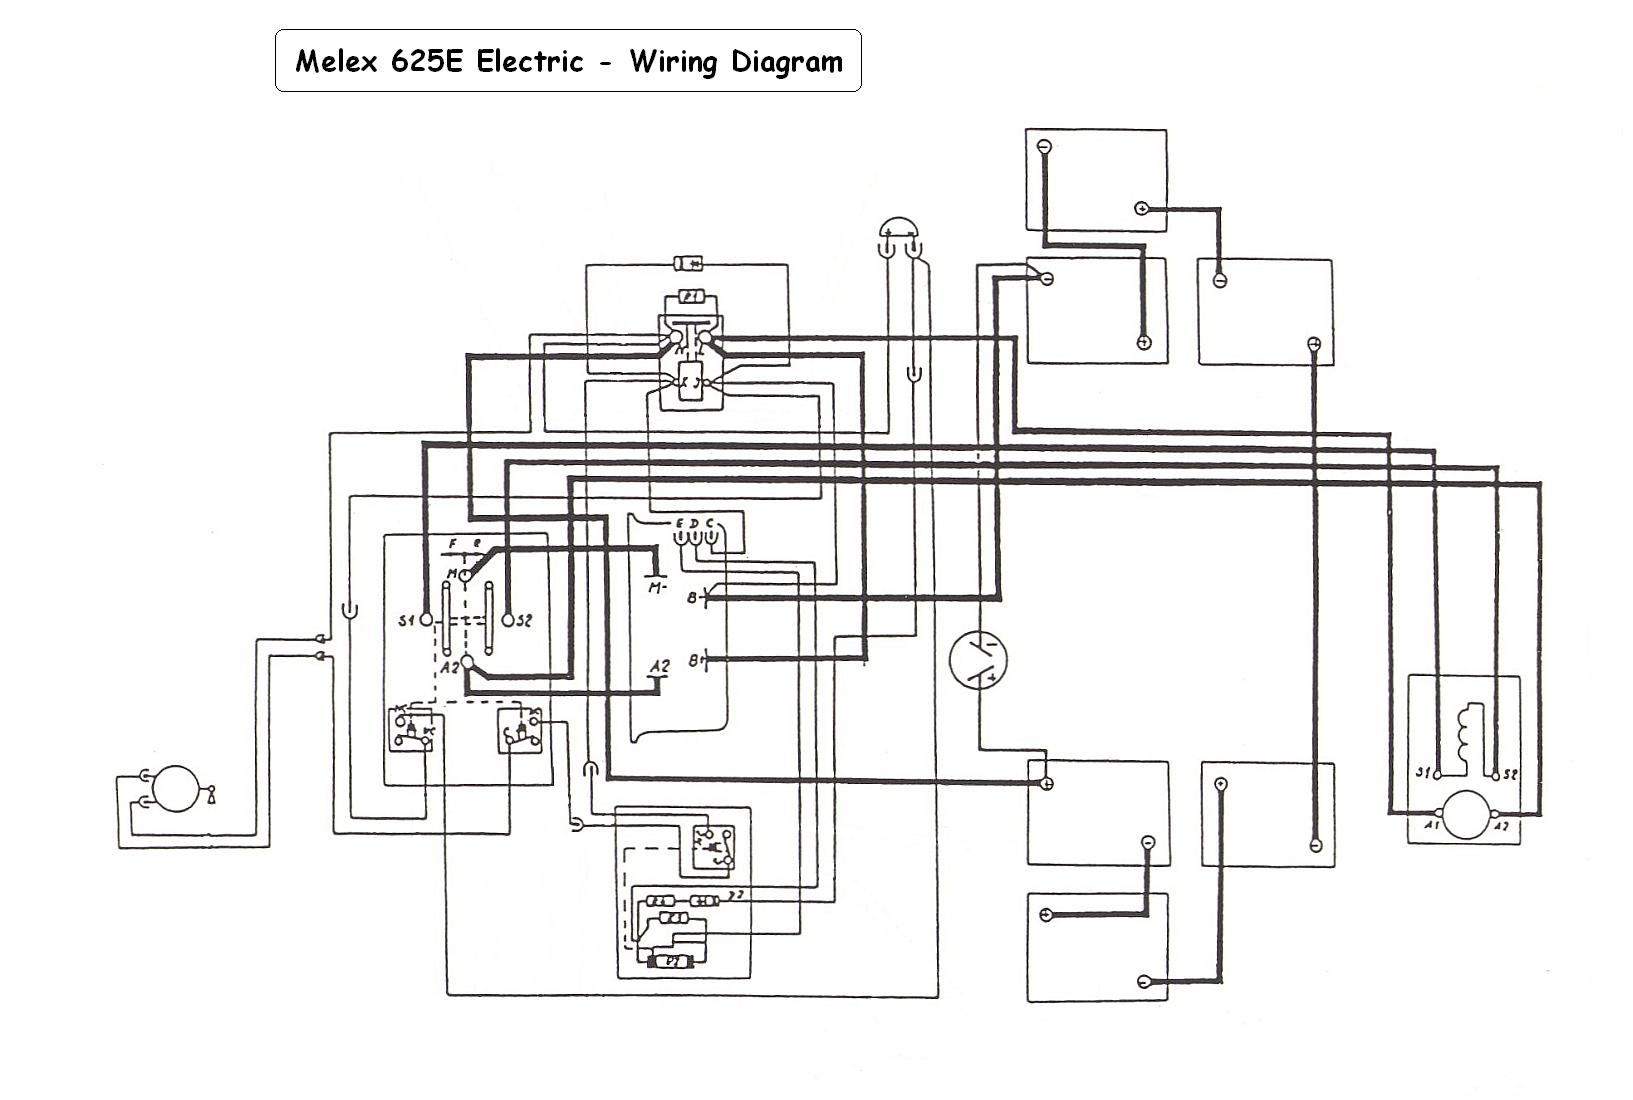 Taylor Dunn Gas Wiring Diagram Yamaha | Wiring Liry on